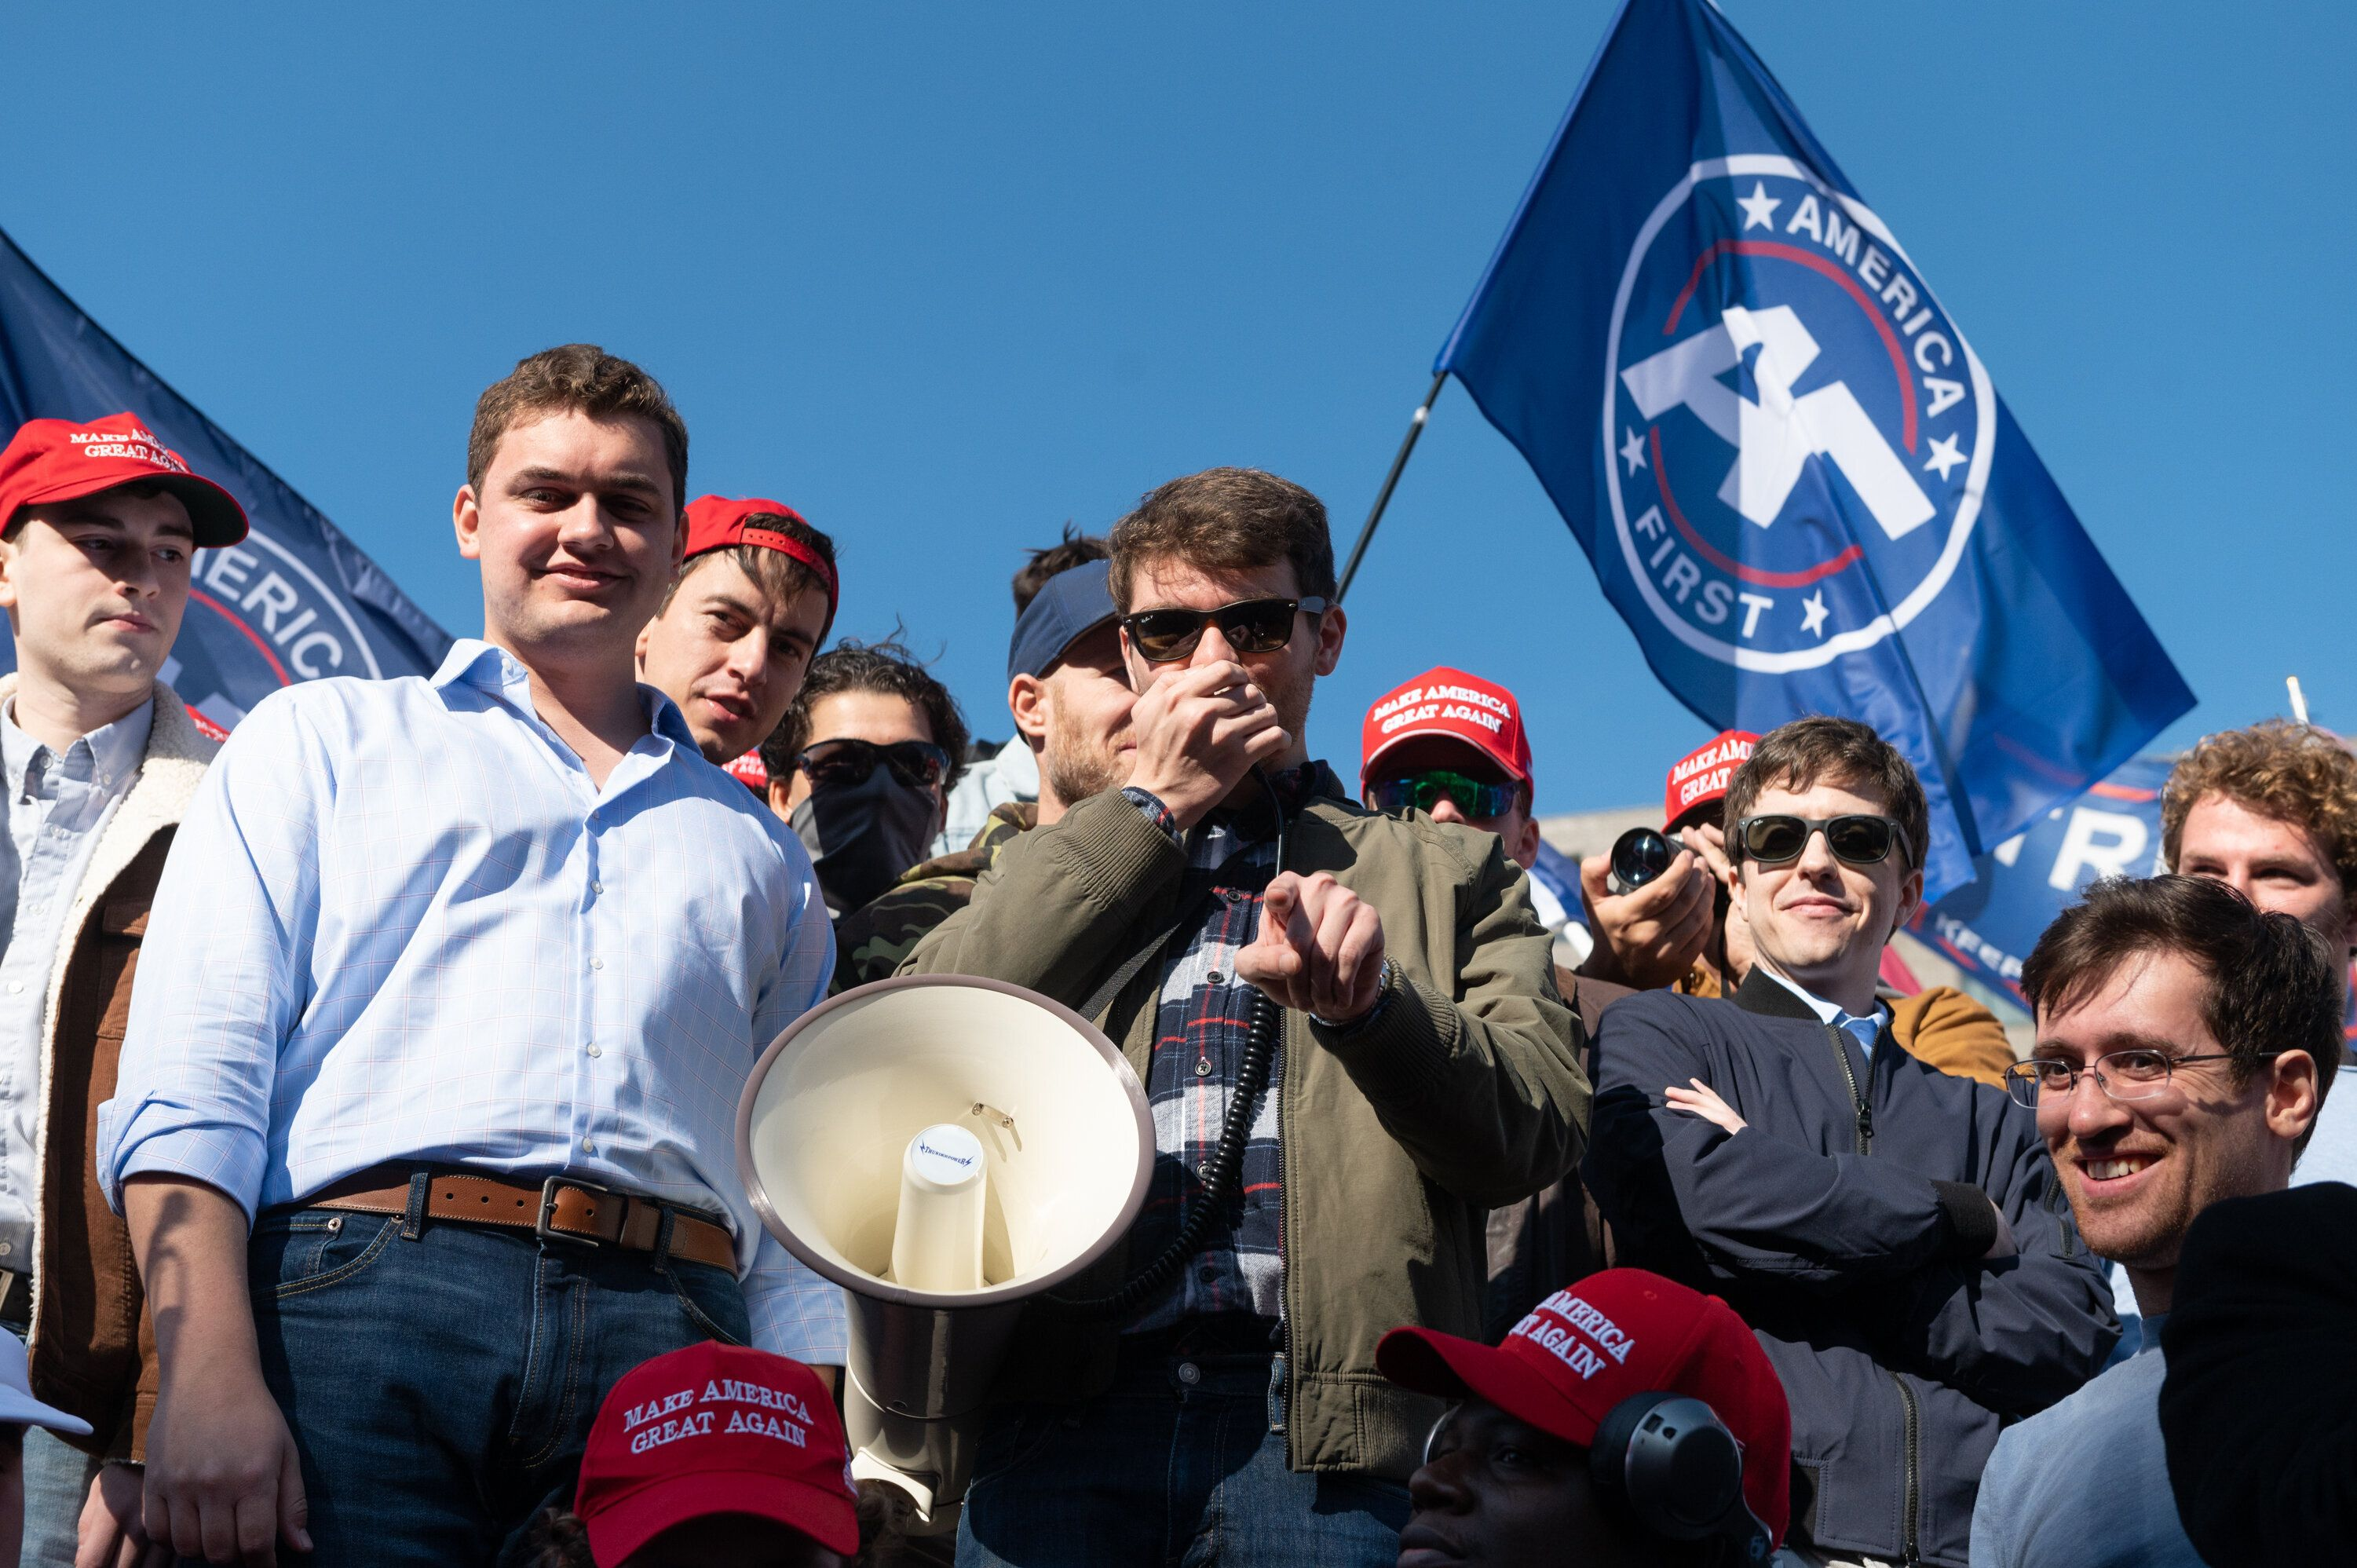 Nick Fuentes, the leader of the white nationalist America First, or Groypers, movement, in Washington, D.C., on Nov. 4.